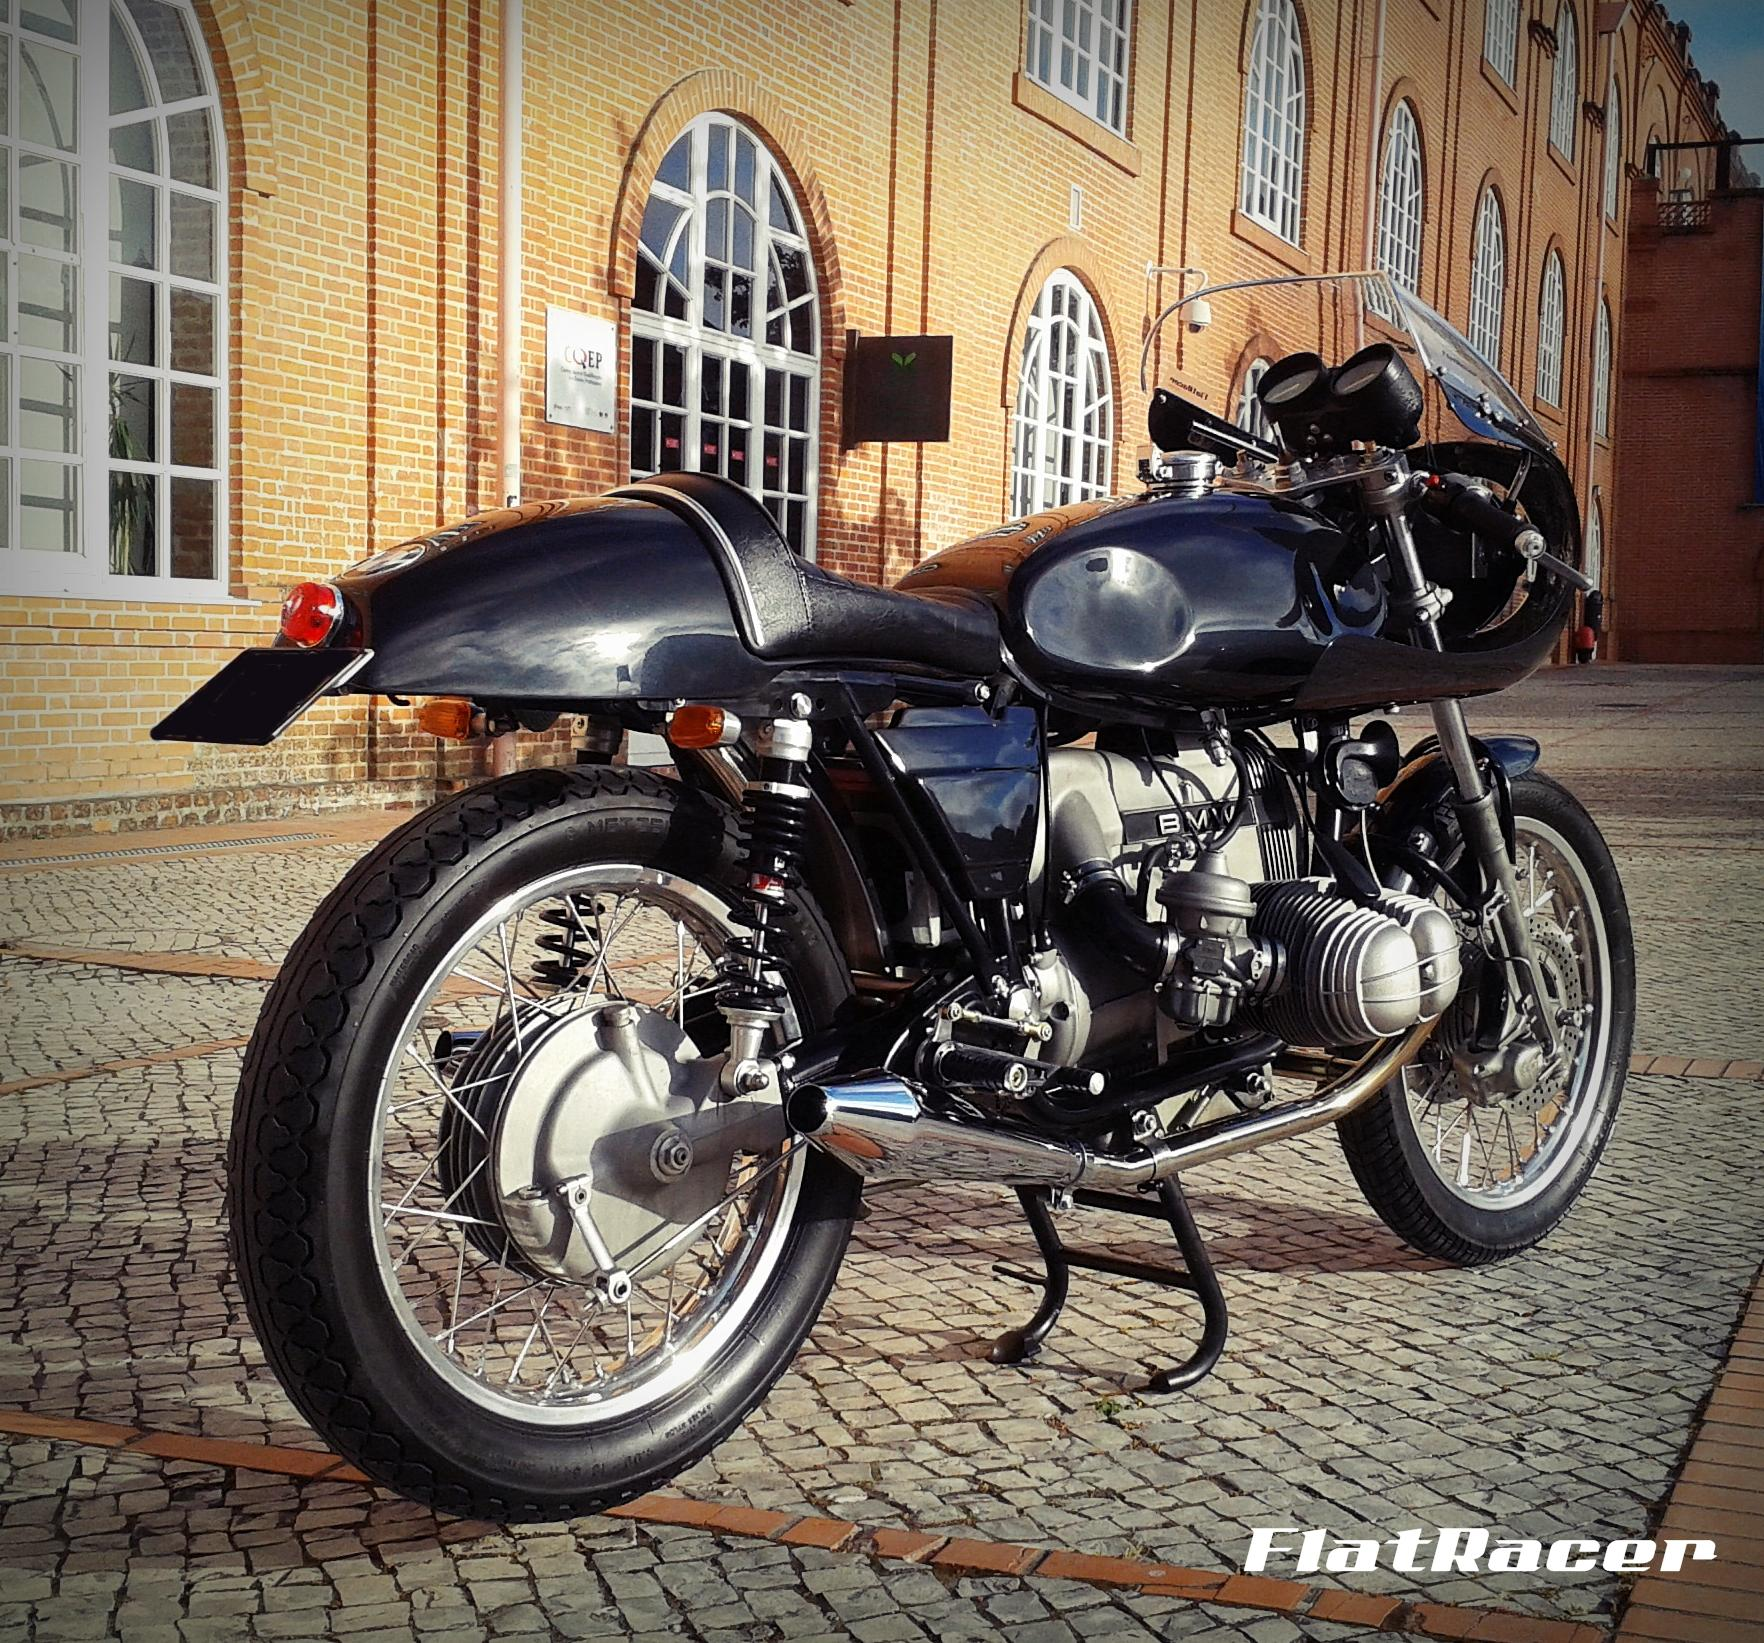 FlatRacer BMW Monza Full Cafe Racer kit